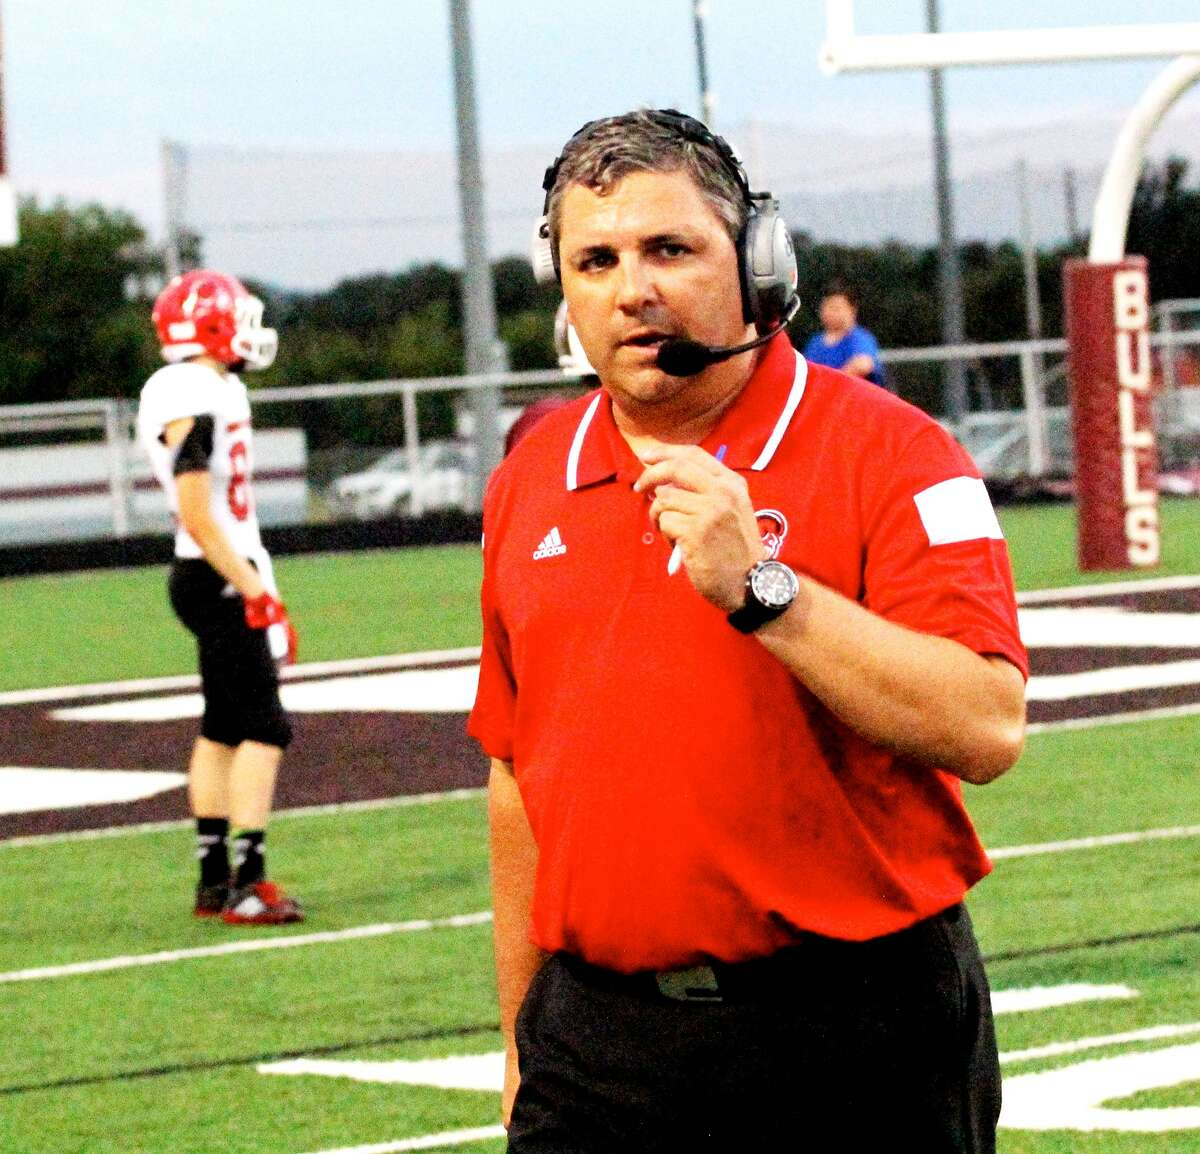 Entering his second year, Mineral Wells High School football coach Gerald Perry has come under fire by players for his handling of the team's quarterback competition. (Photo courtesy Mineral Wells Index)